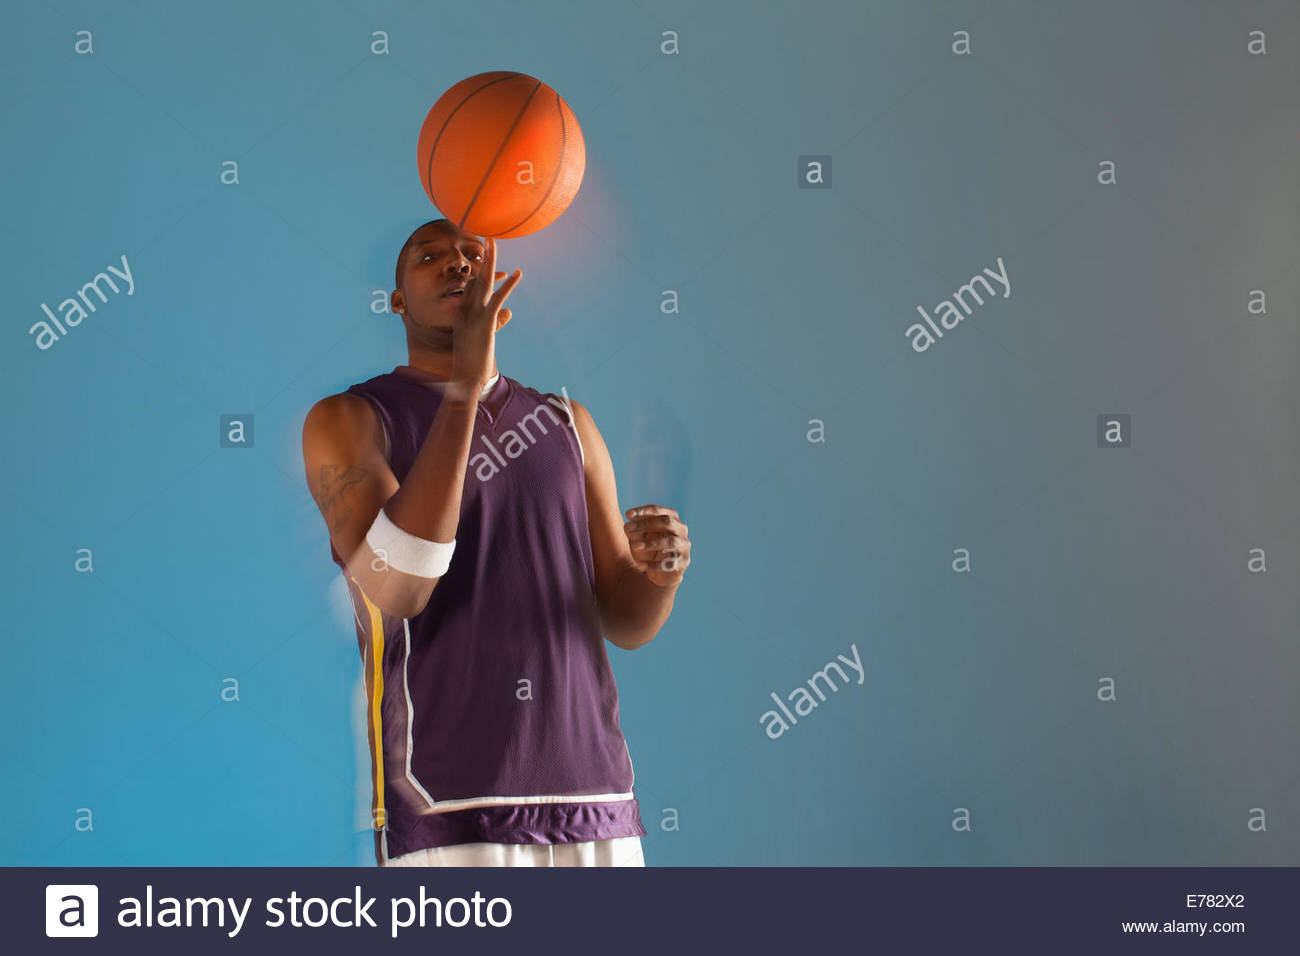 Basketball player balancing ball on one finger - Stock Image